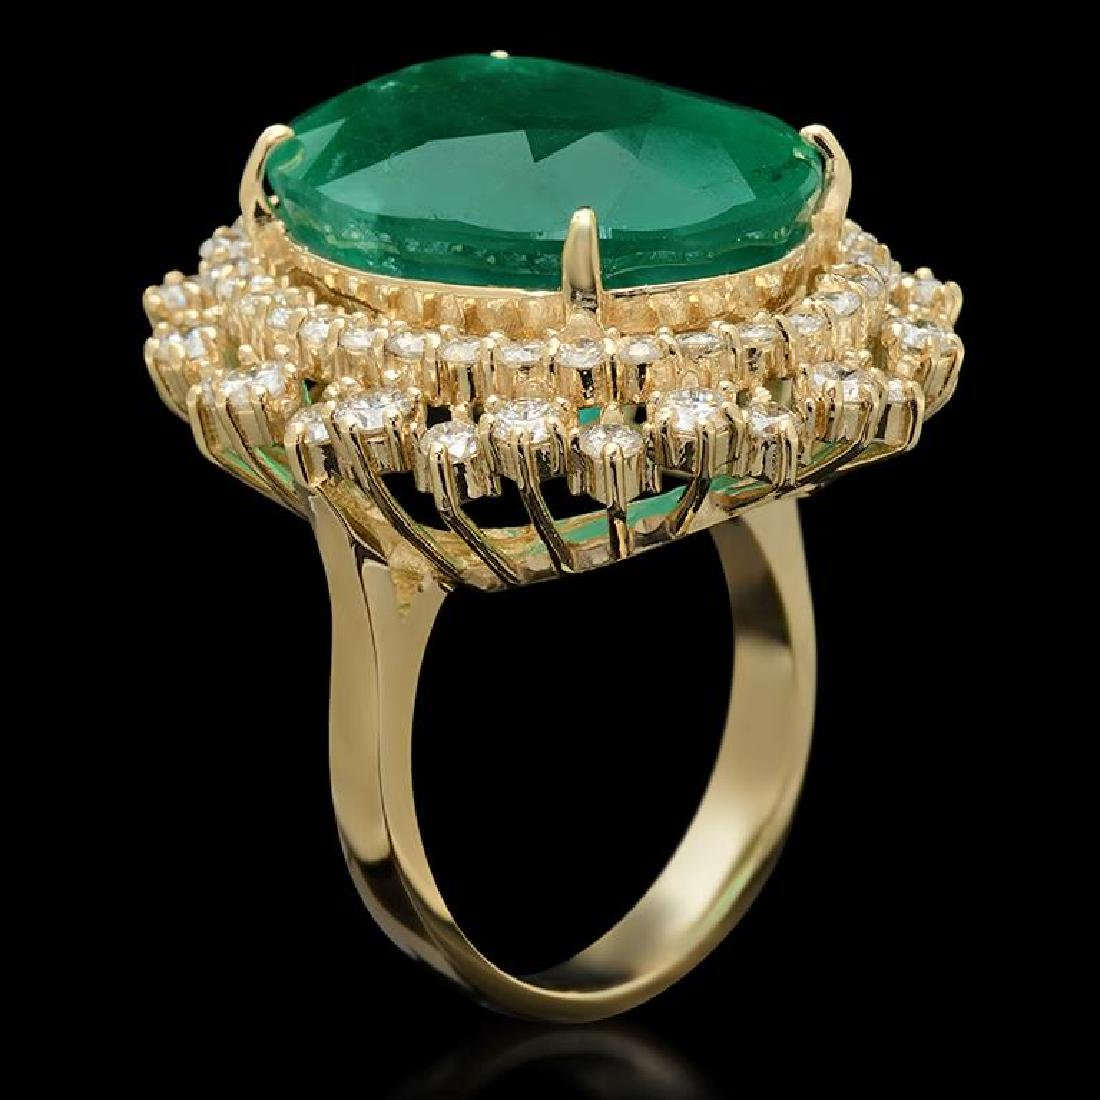 14K Gold 17.93ct Emerald 2.10ct Diamond Ring - 2